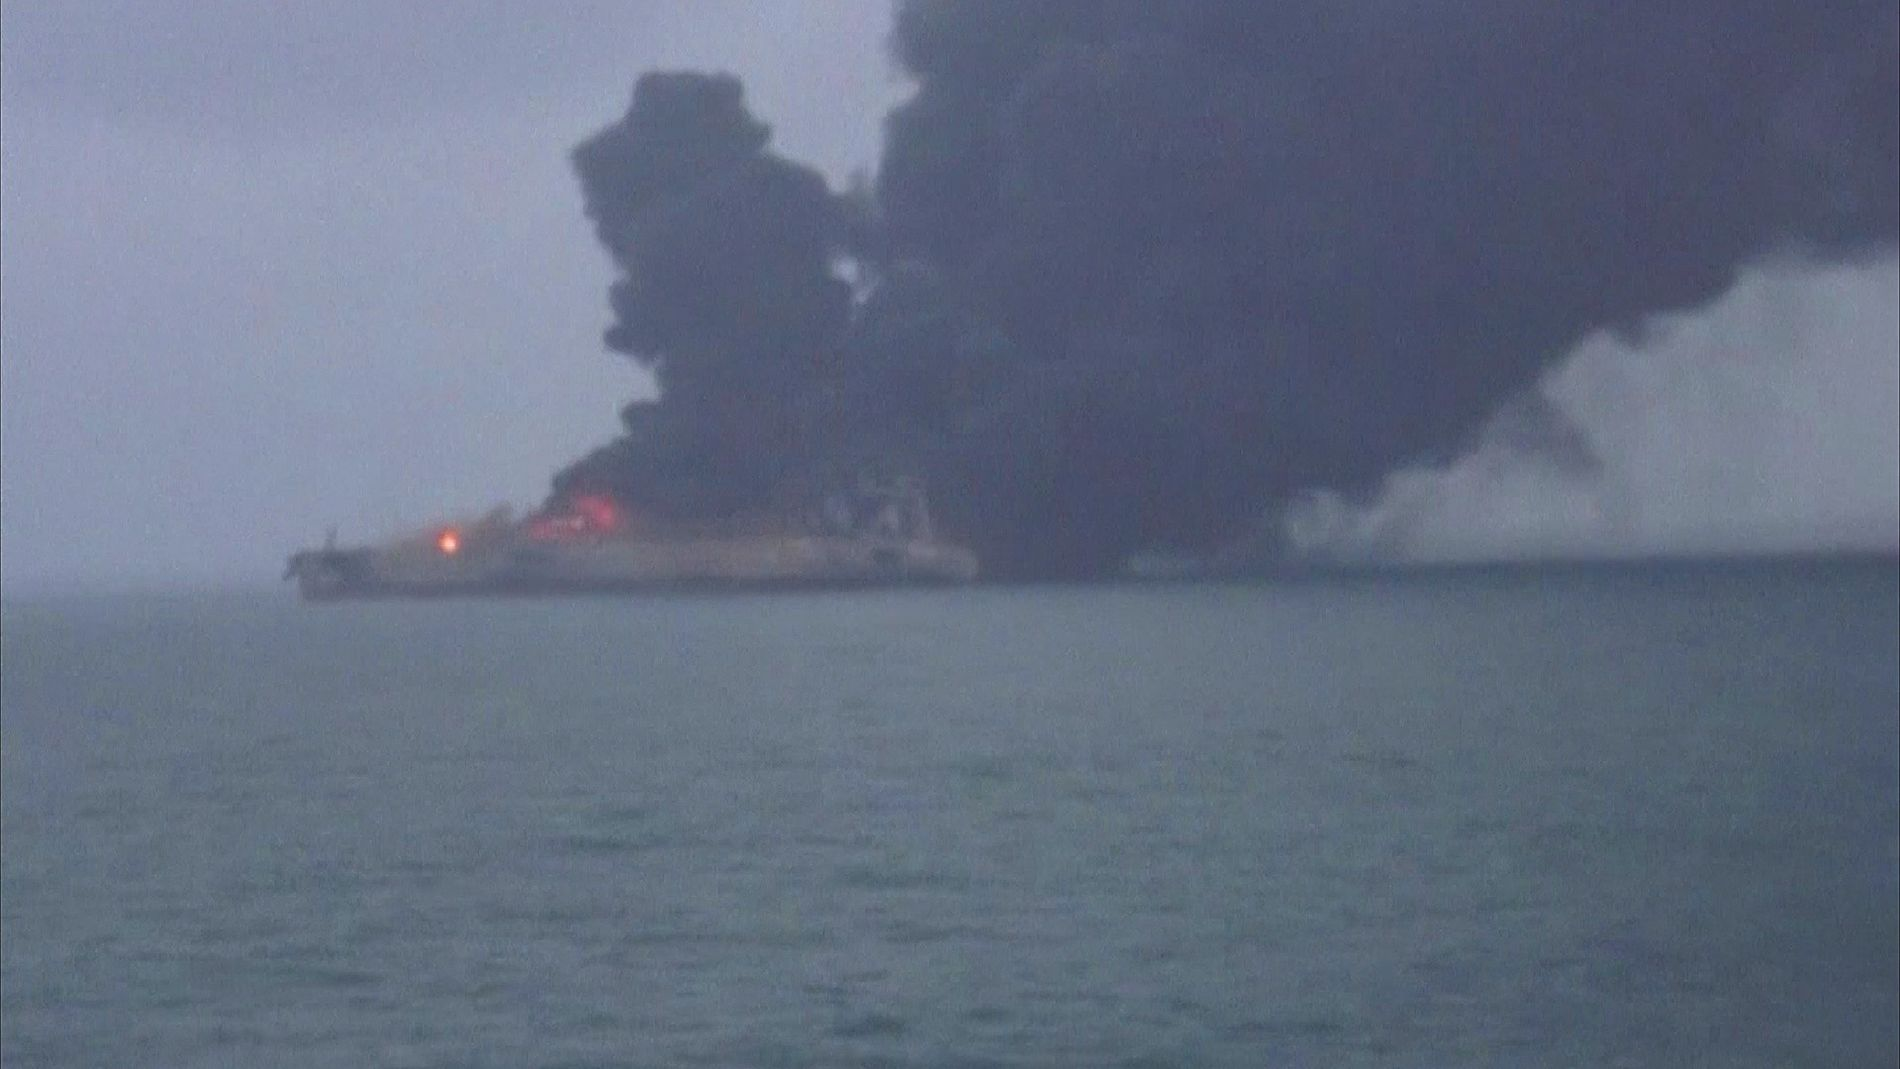 An Iranian oil tanker is in danger of exploding and sinking after colliding with a Chinese ...